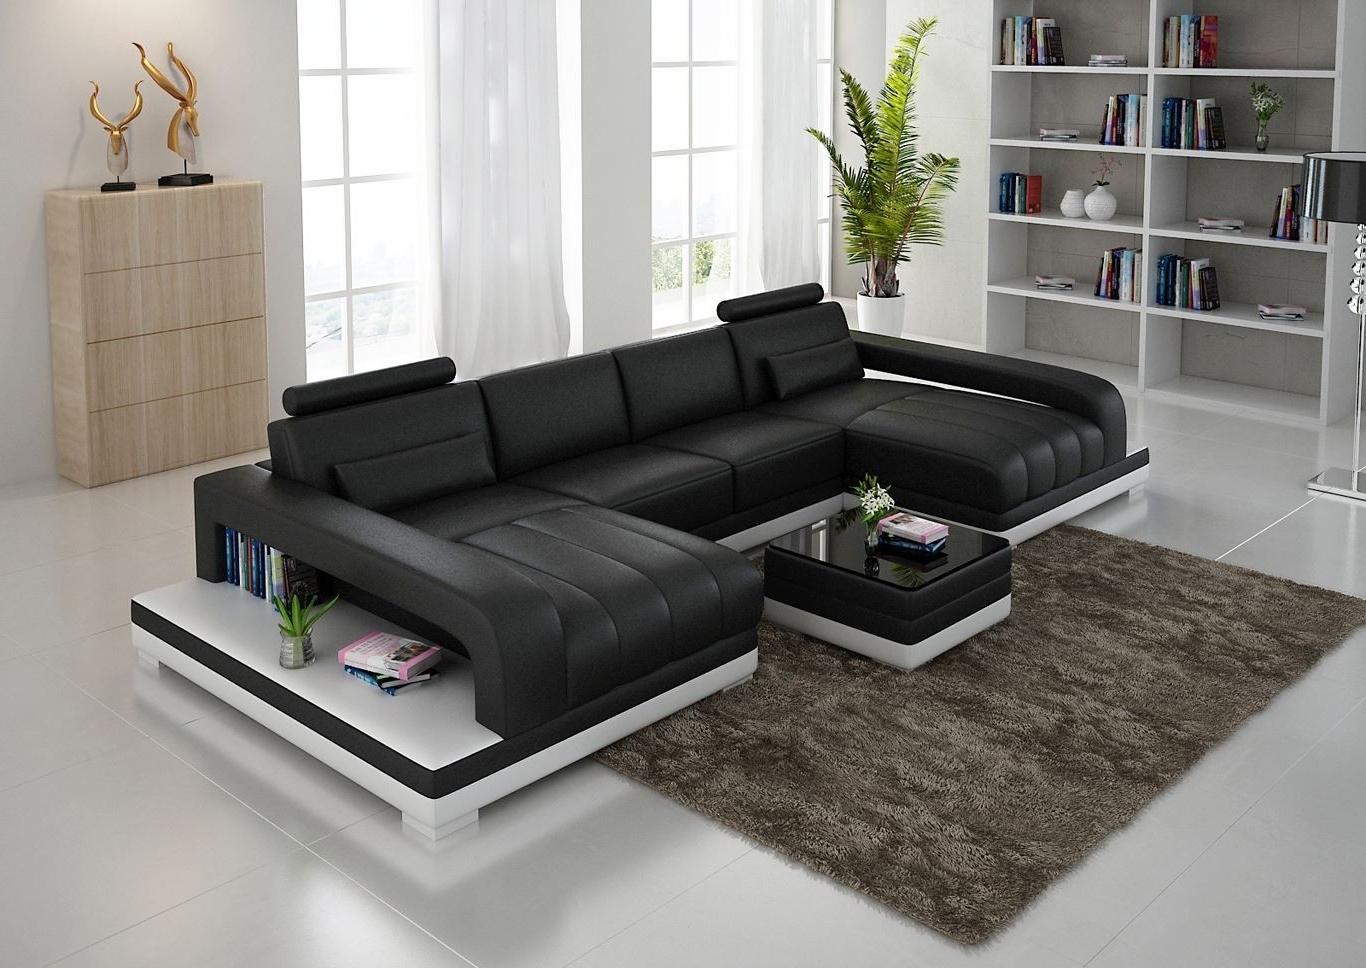 Latest Lounge Ii 2 Piece Left Arm Double Chaise Sectional Sofa Crate With Pertaining To Double Chaise Lounge Sofas (View 10 of 15)